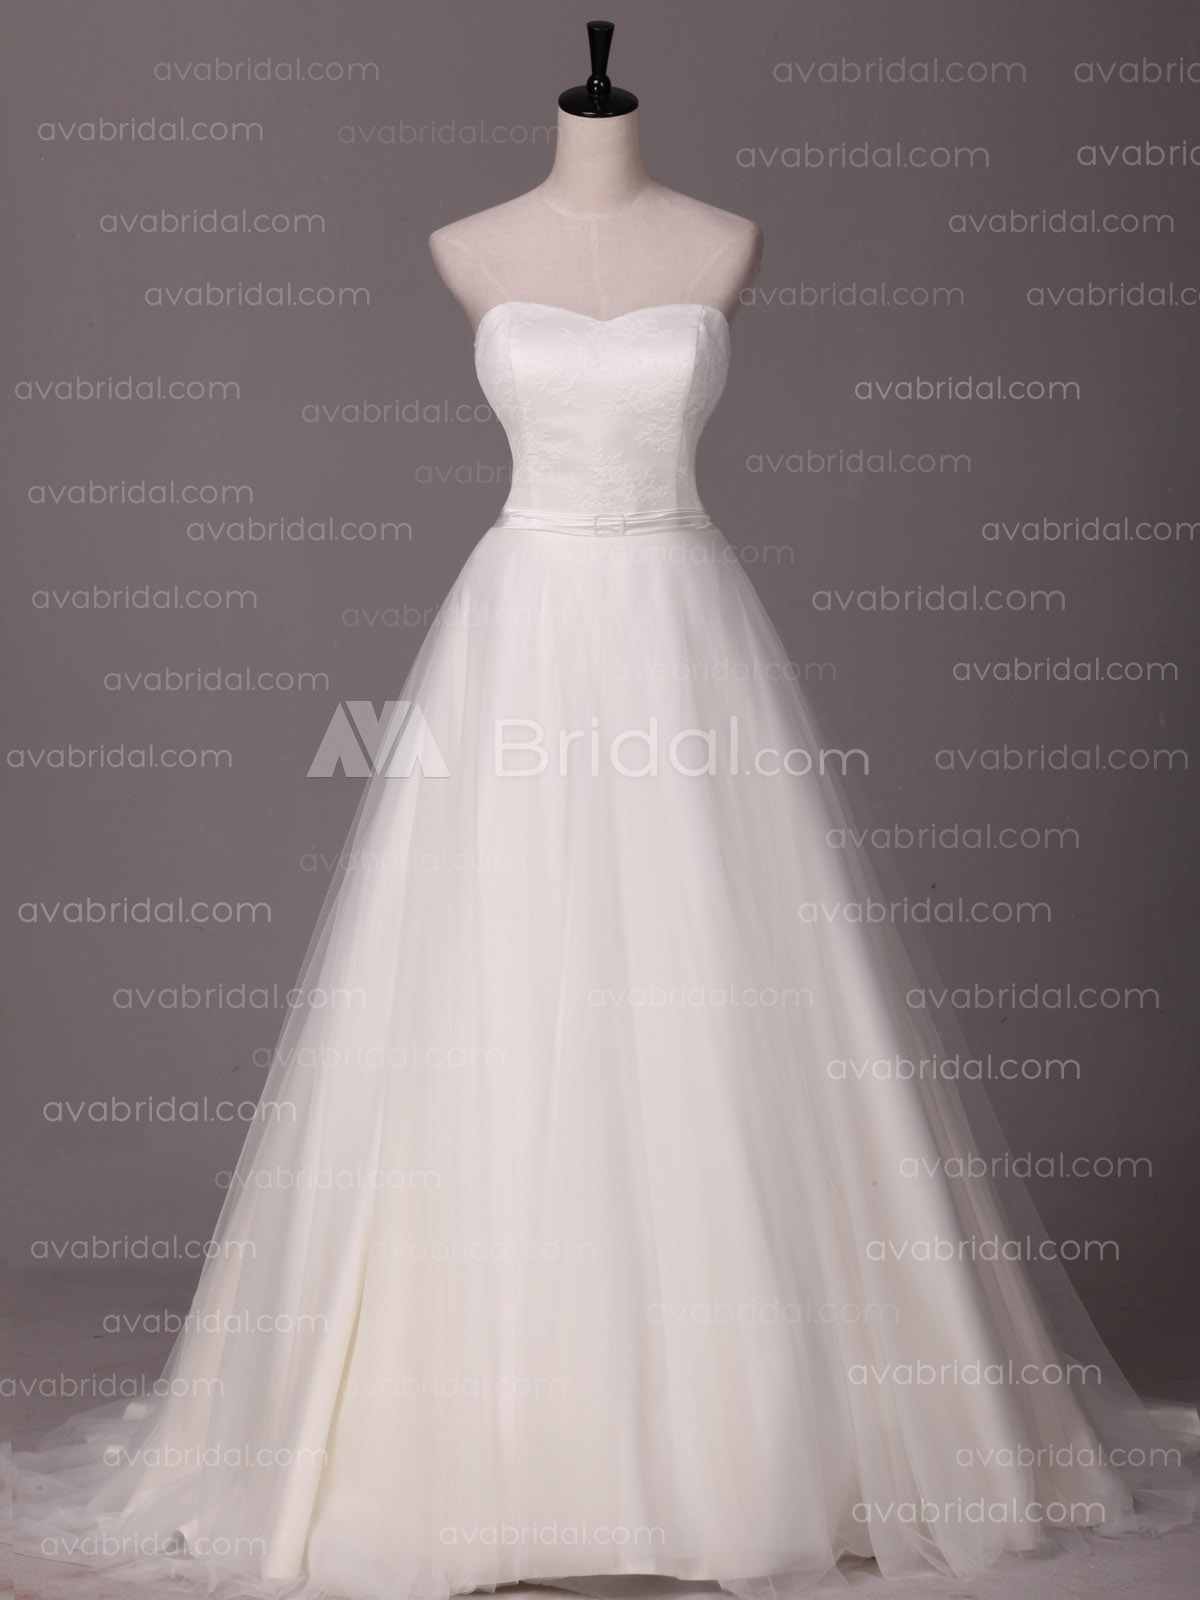 A-line Sweetheart Neckline Romanticwedding dress-front